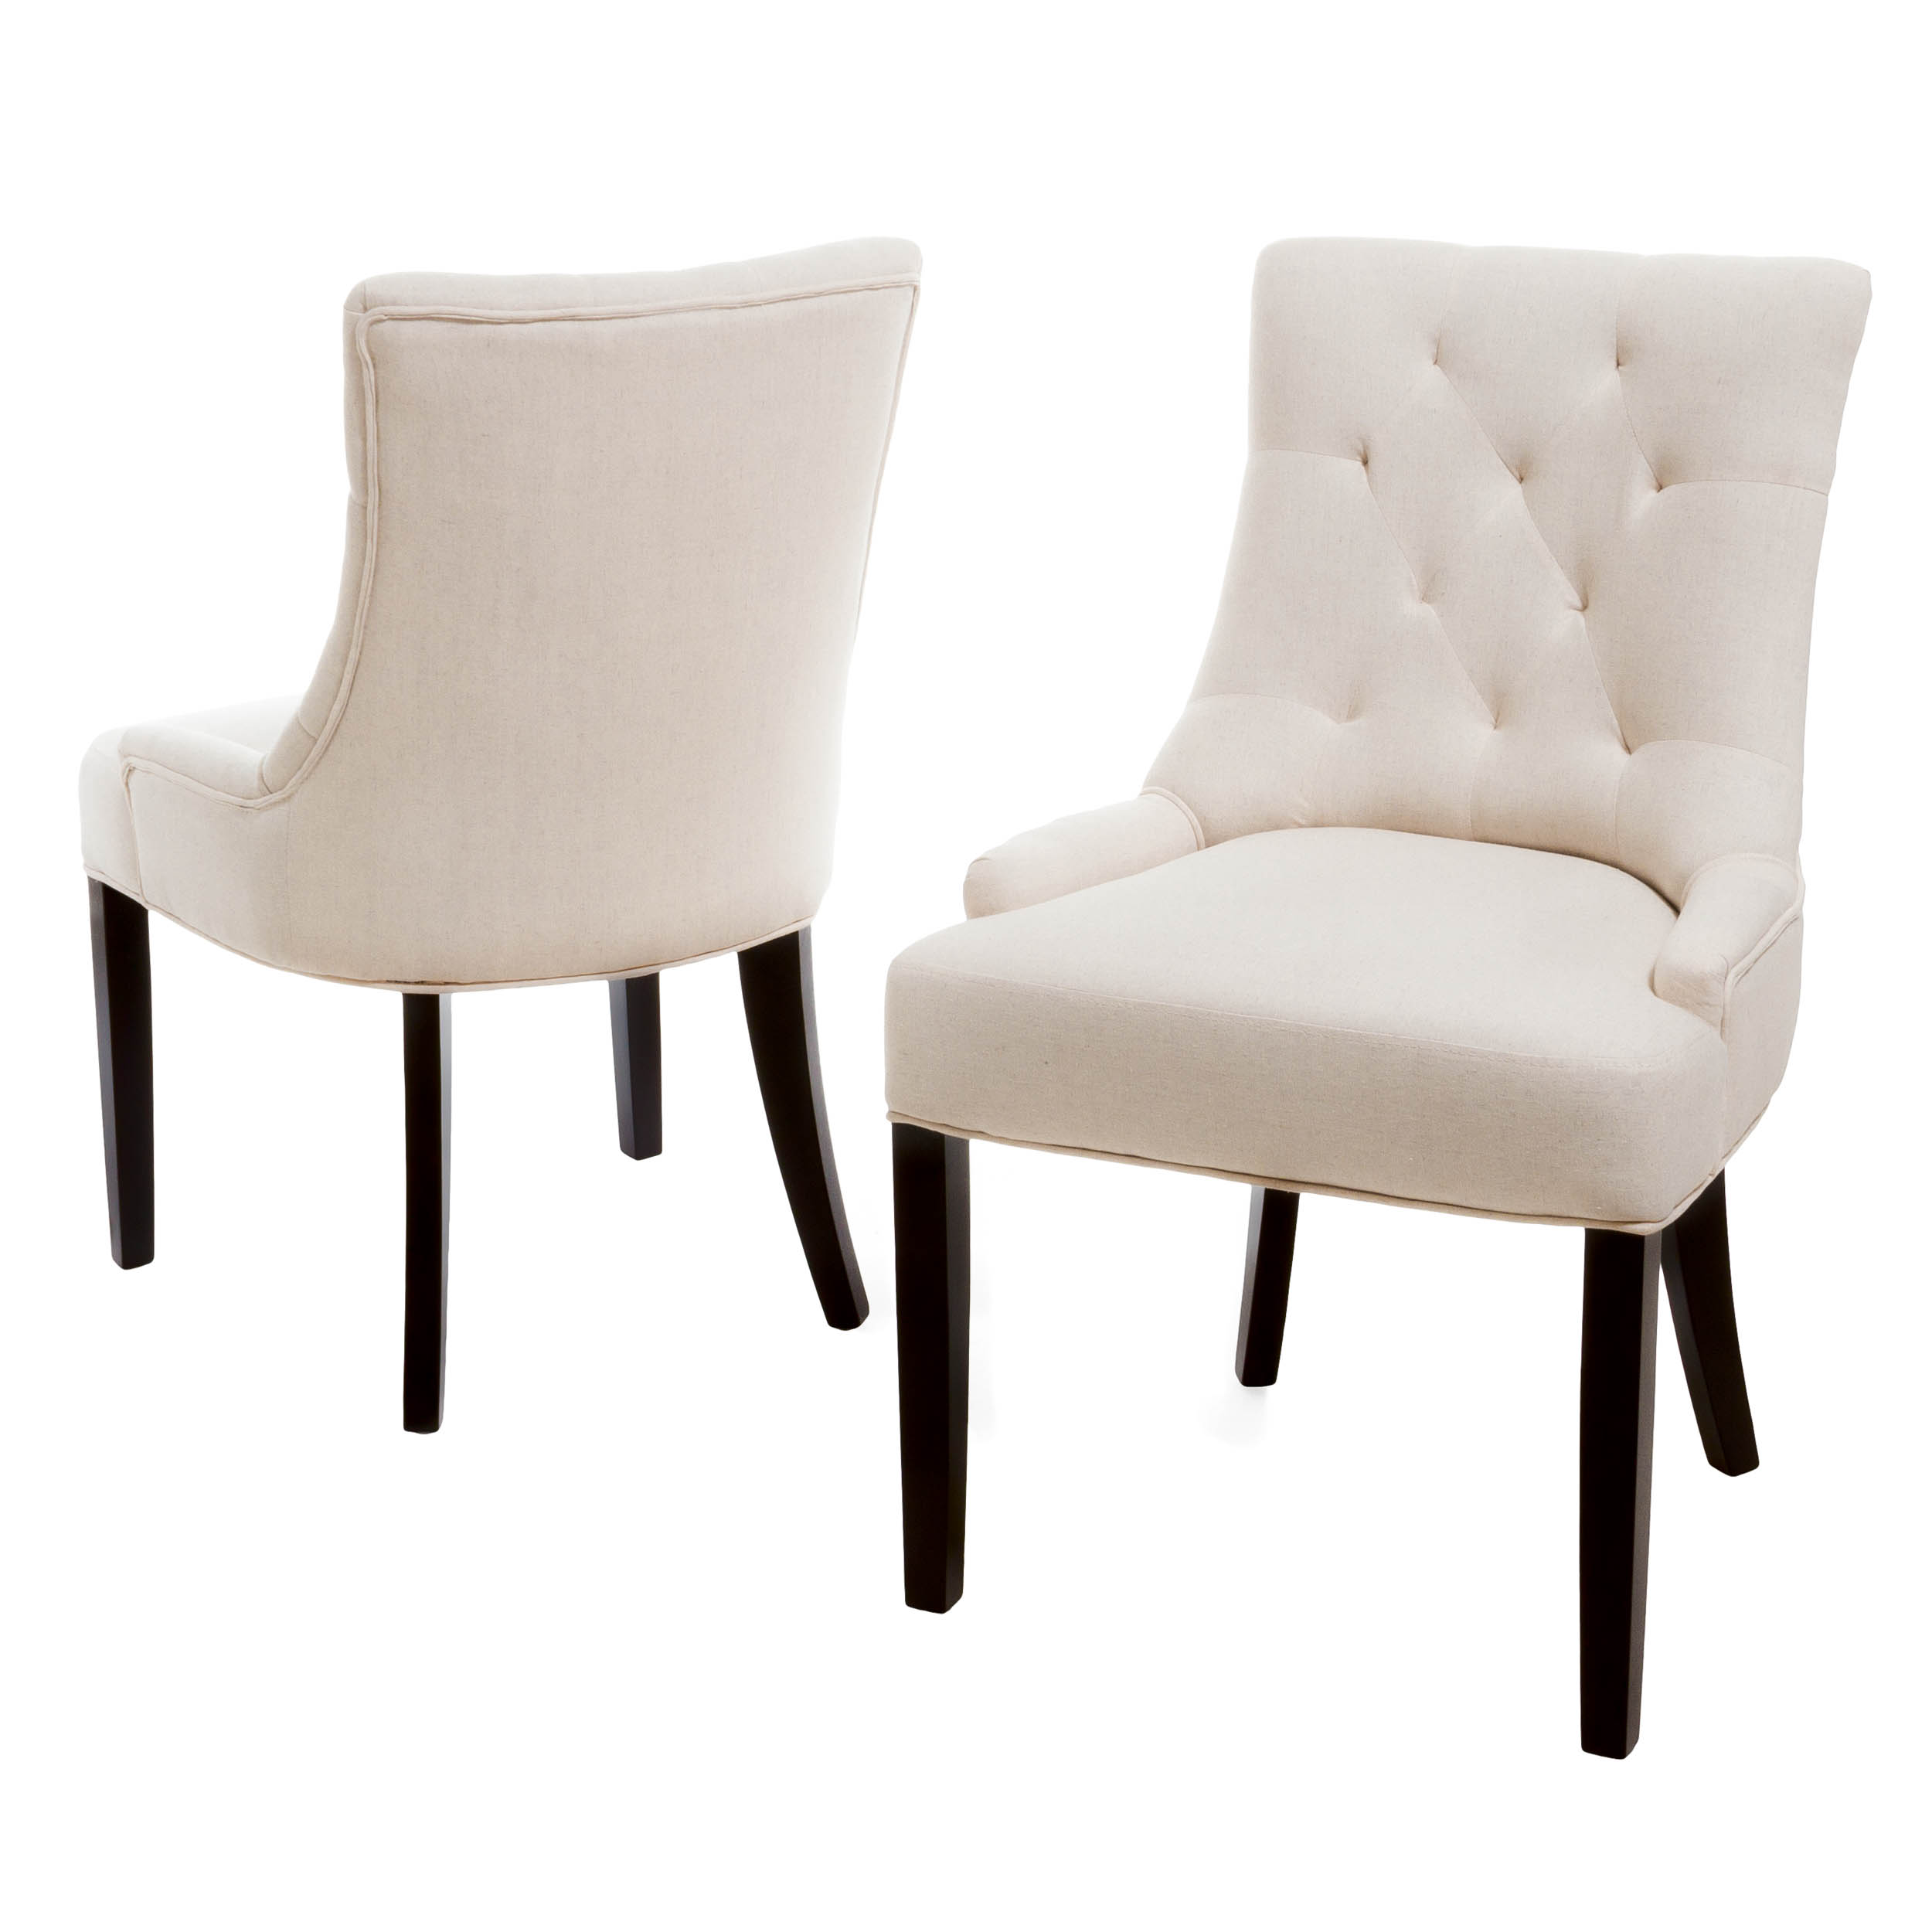 chair dining. johnson tufted fabric dining chair (set of 2)